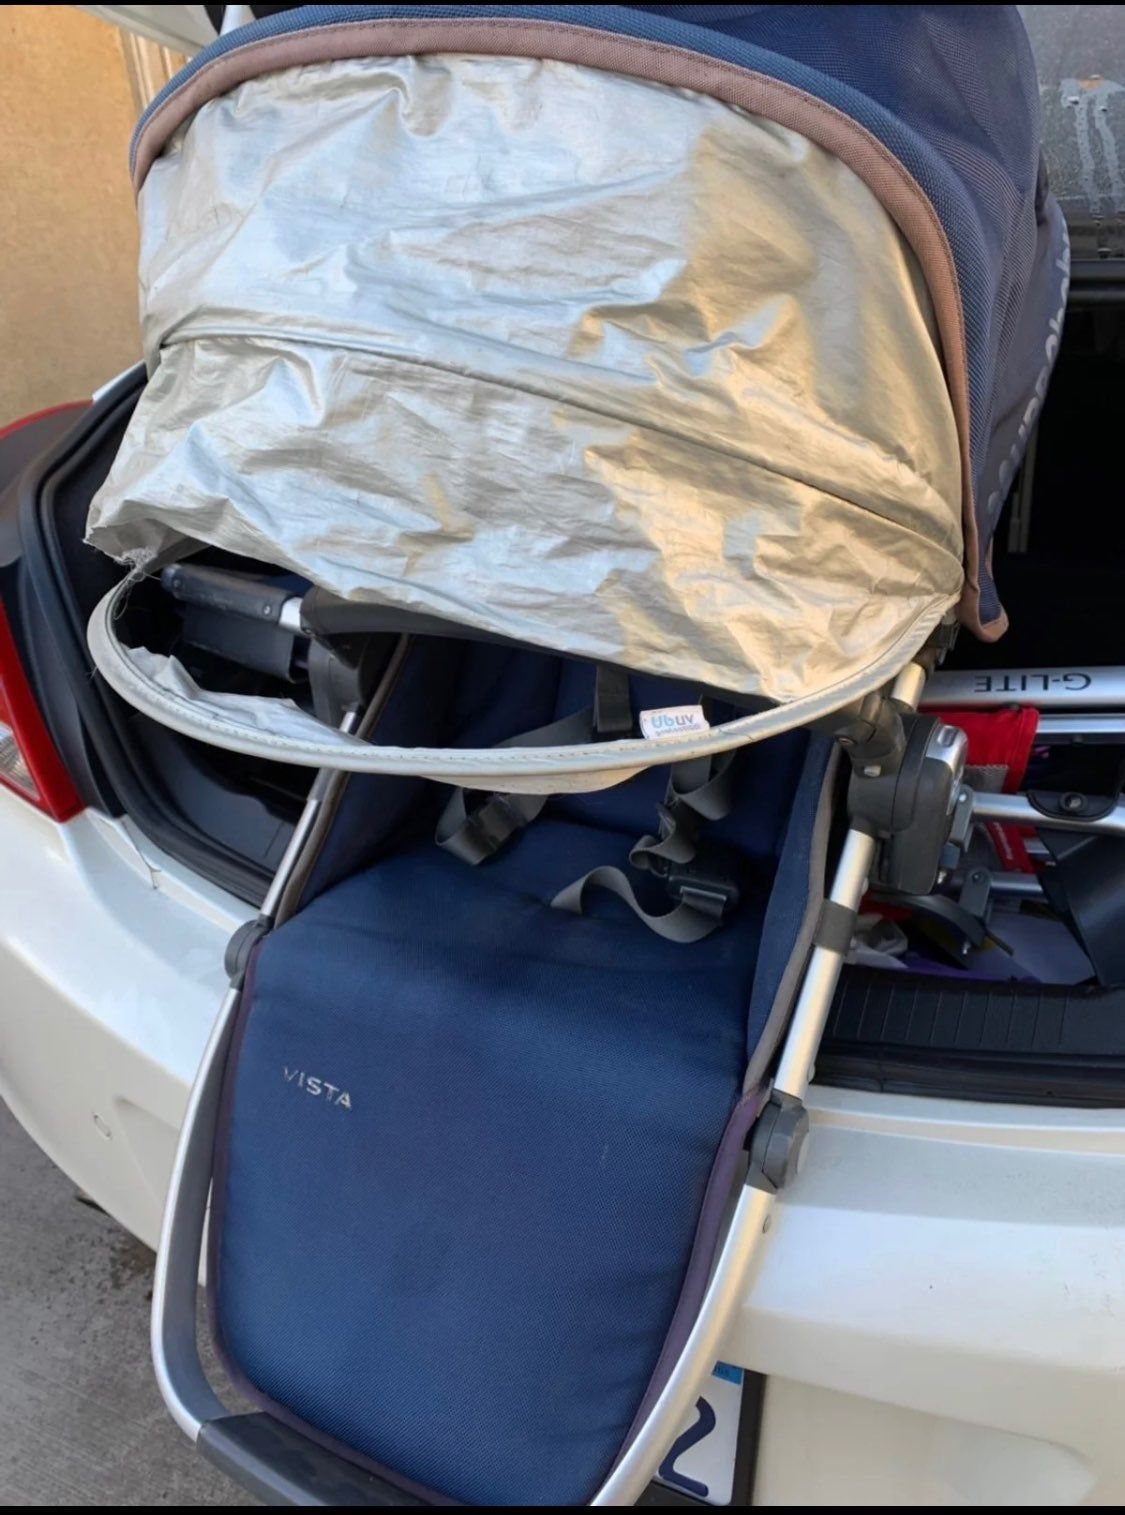 2015 uppababy vista main seat frame is in good conditions